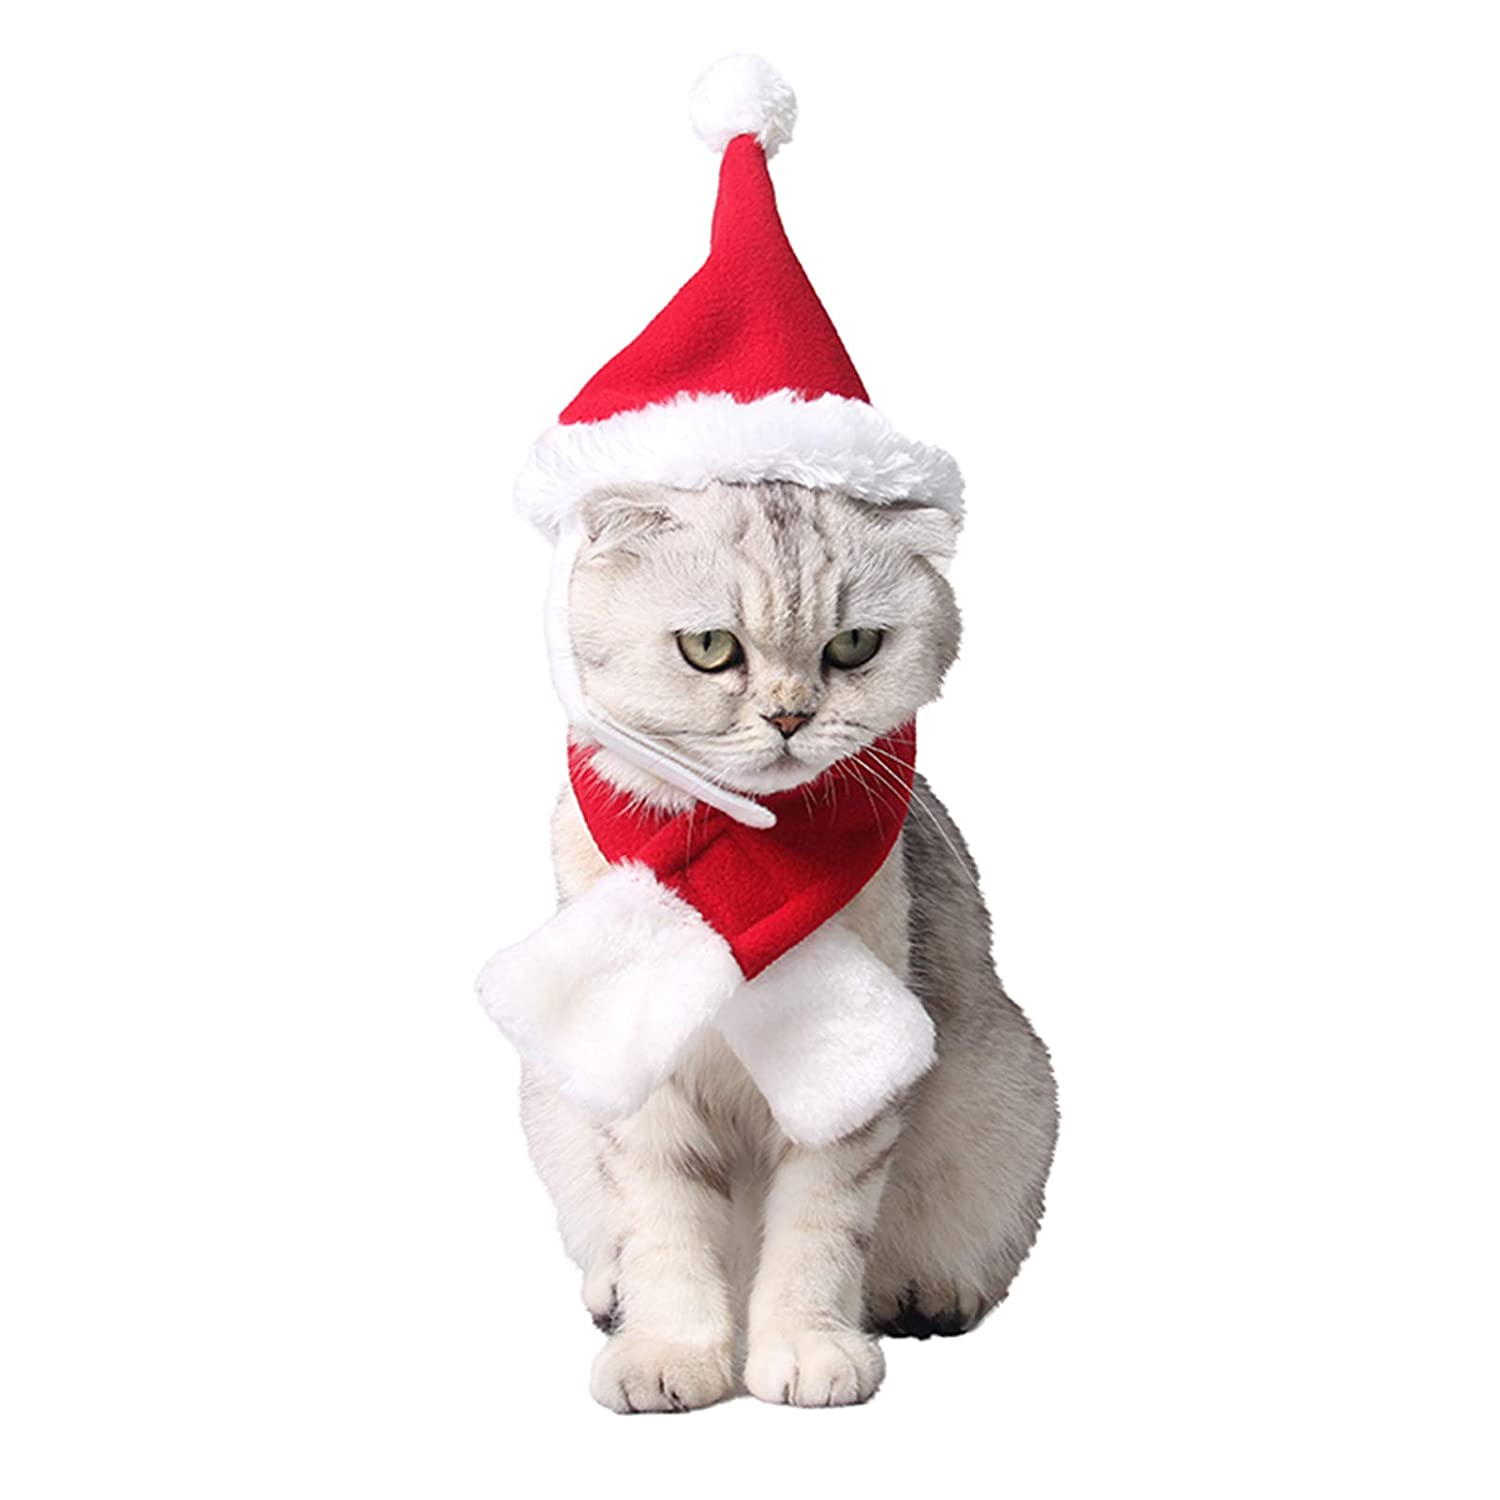 2pcs Christmas Collar and Hat For Small Pet Kitten Doggy Santa Hat Collars Necktie with Bell Cat Dog Christmas Costume Set Winter Clothes Warm Soft Lovely for Kitty Puppy Sweet Gift